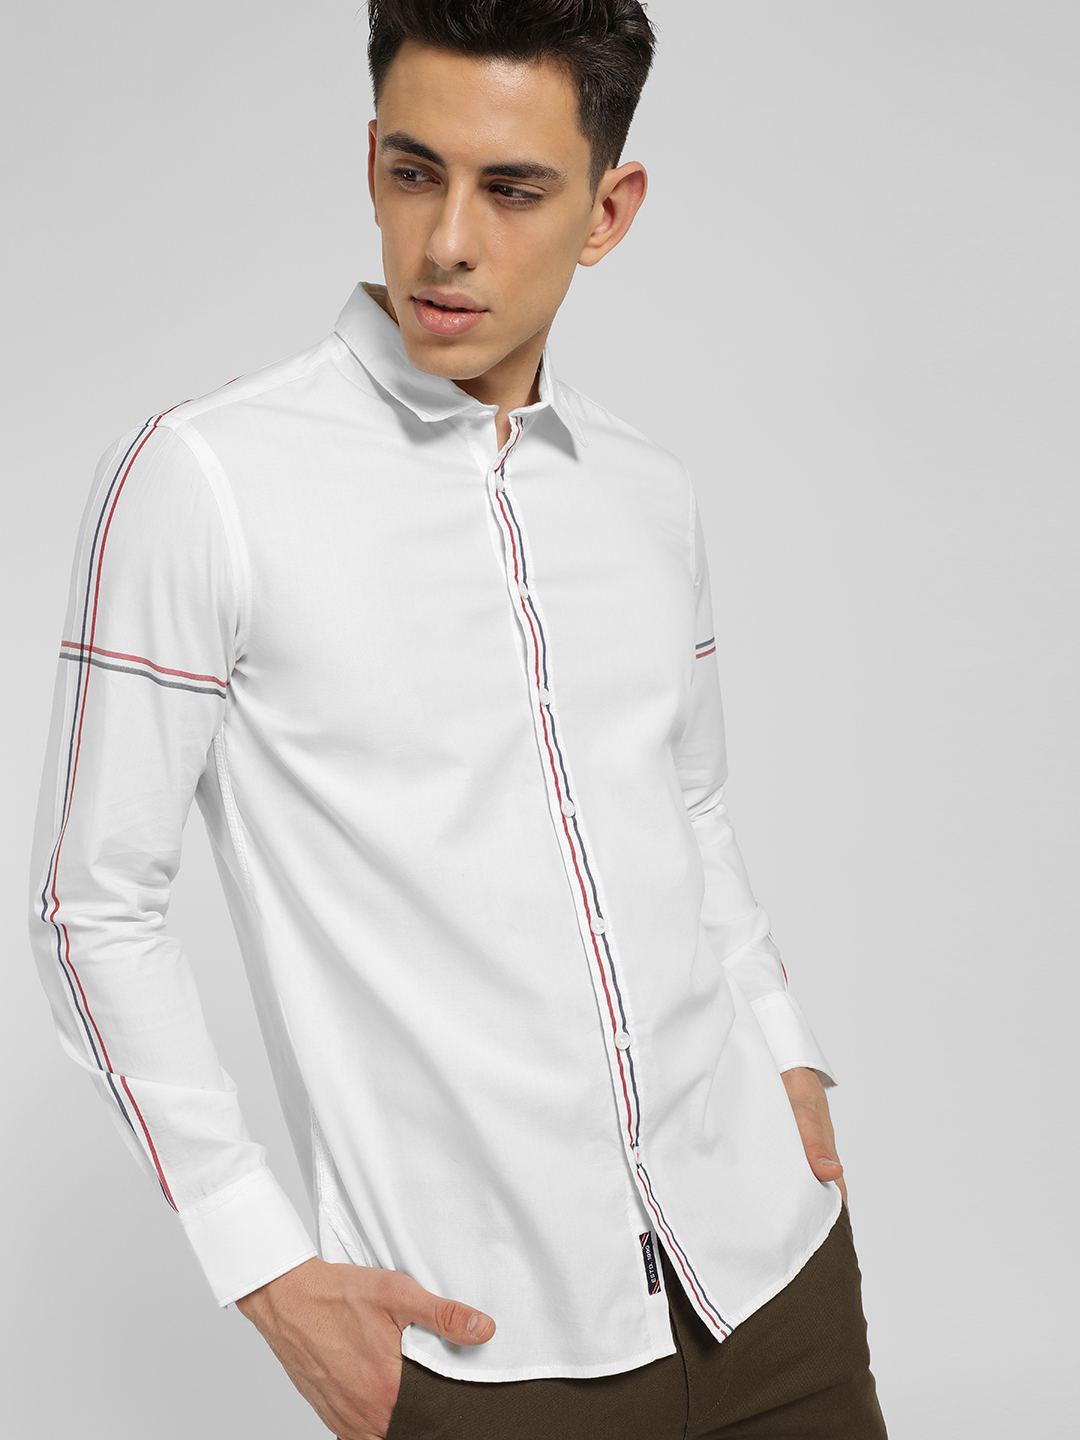 SCULLERS White Contrast Stripe Slim Shirt 1